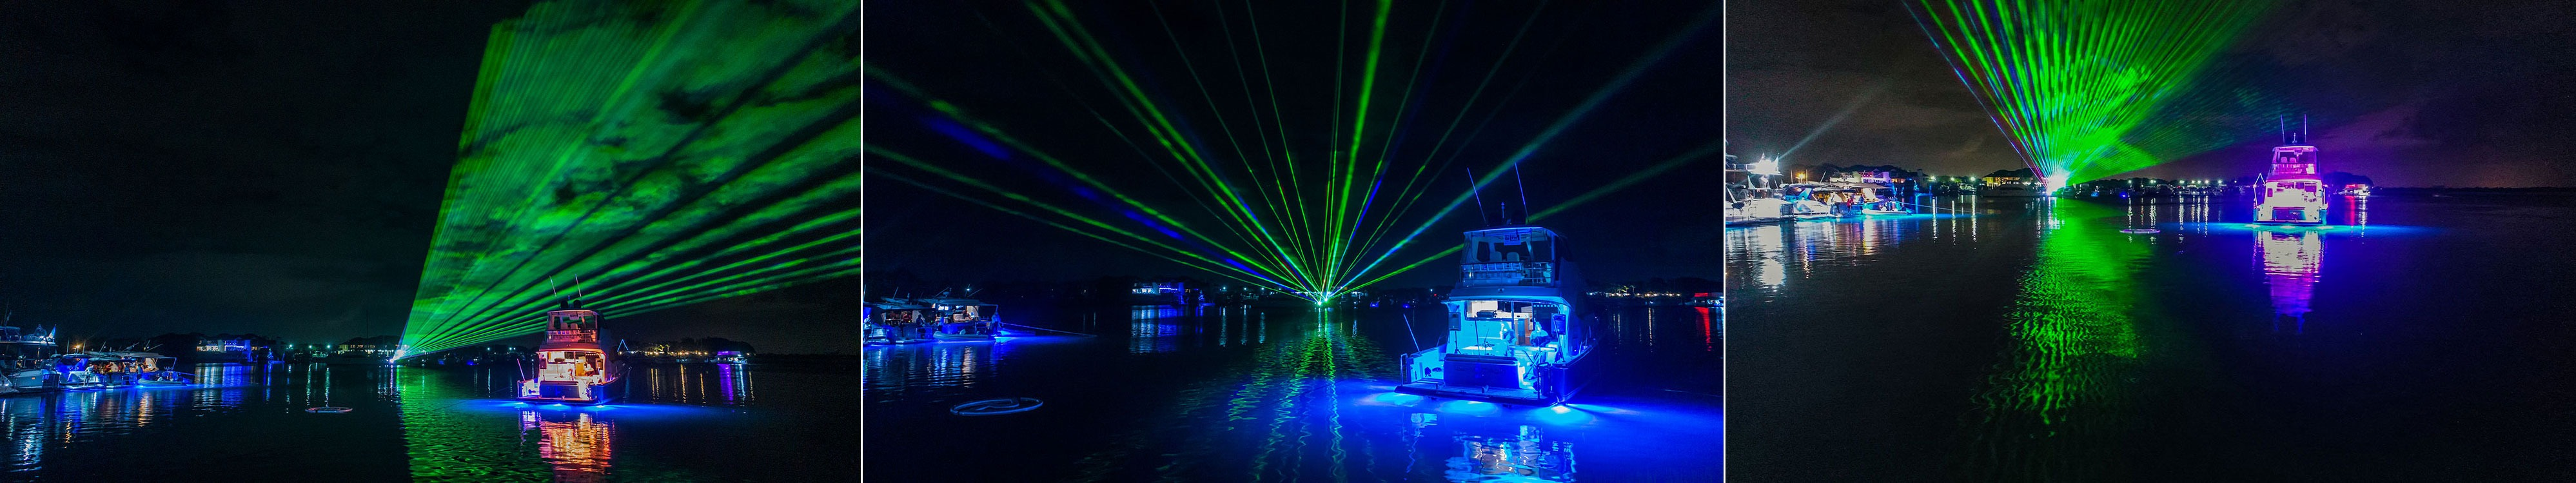 The spectacular laser light show was a highlight.